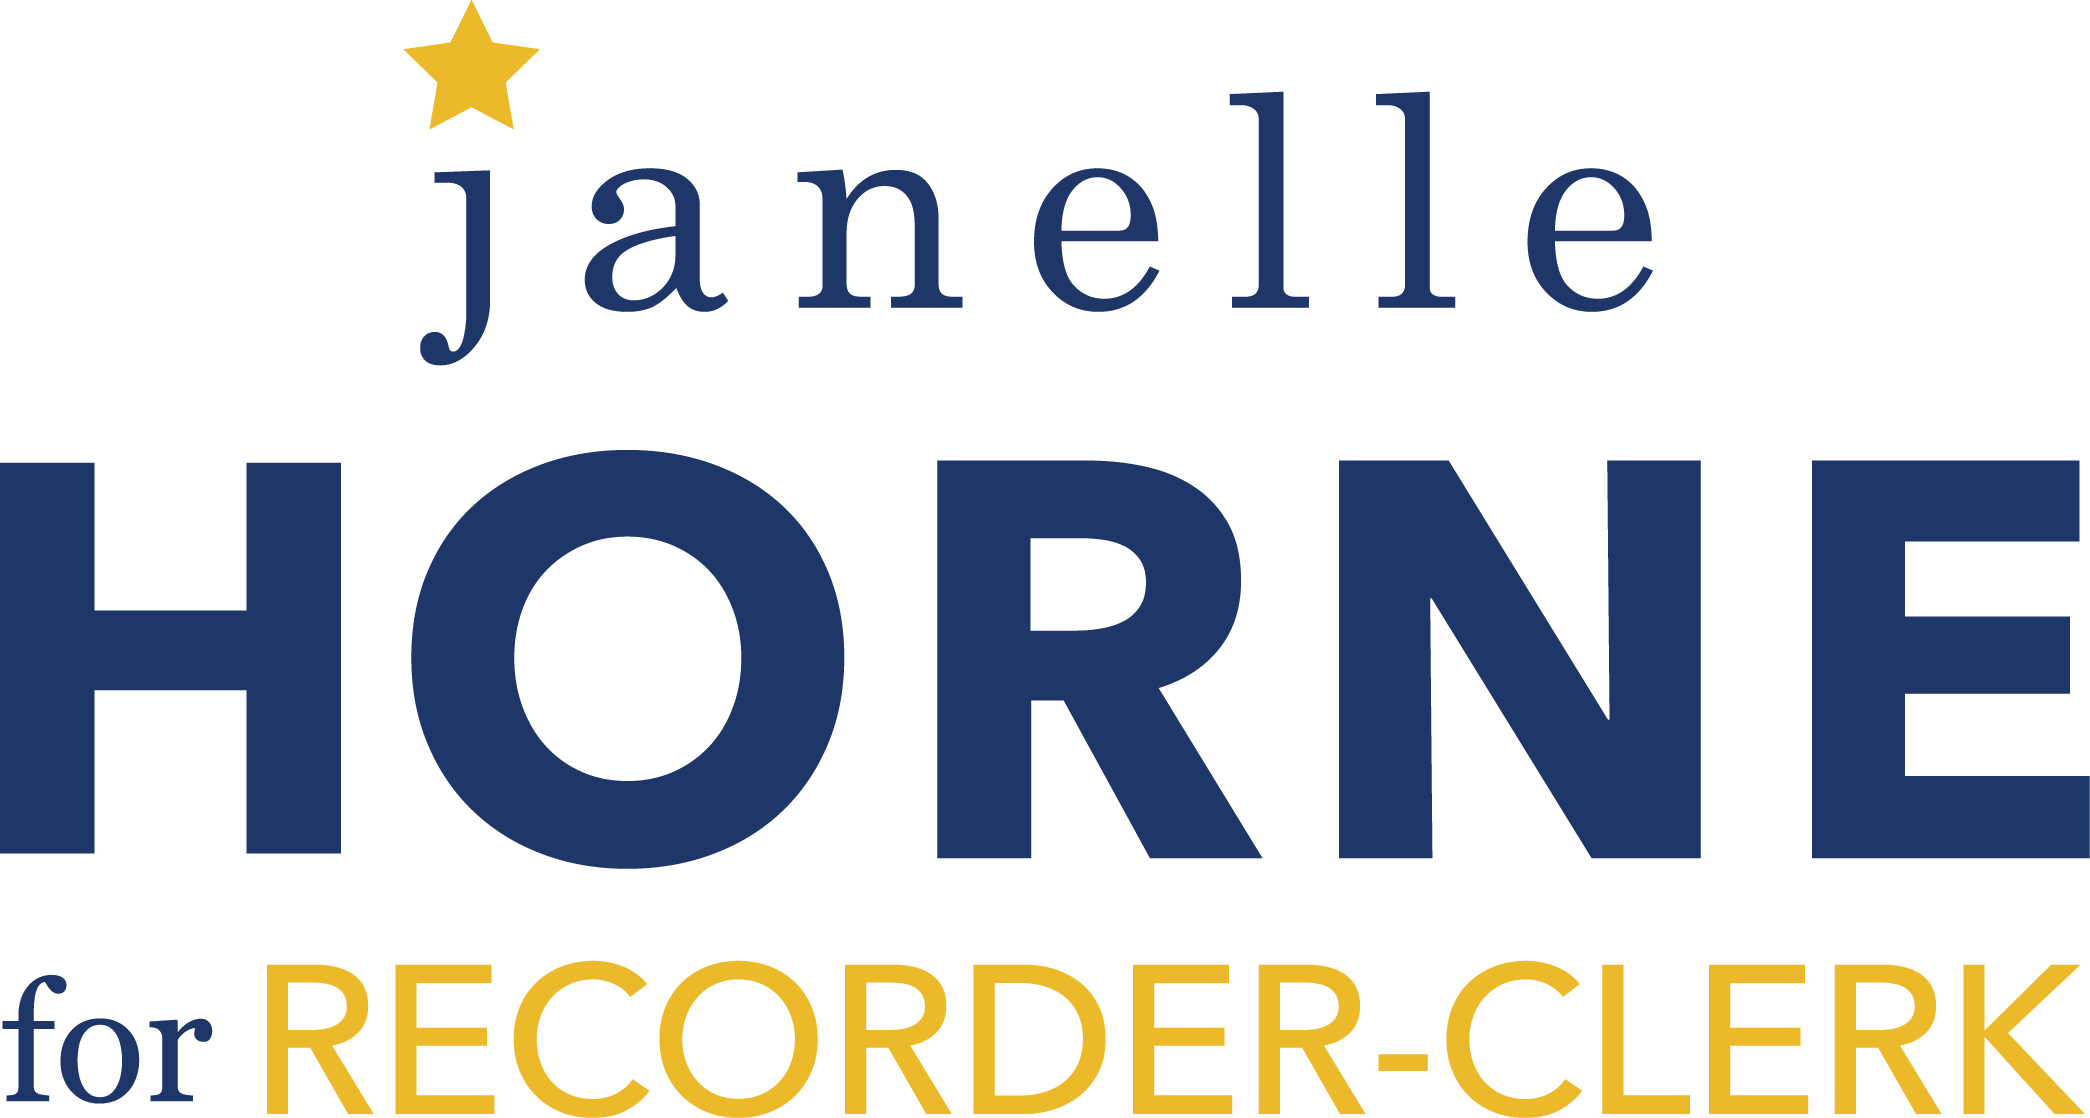 Janelle Horne for Recorder Clerk 2018